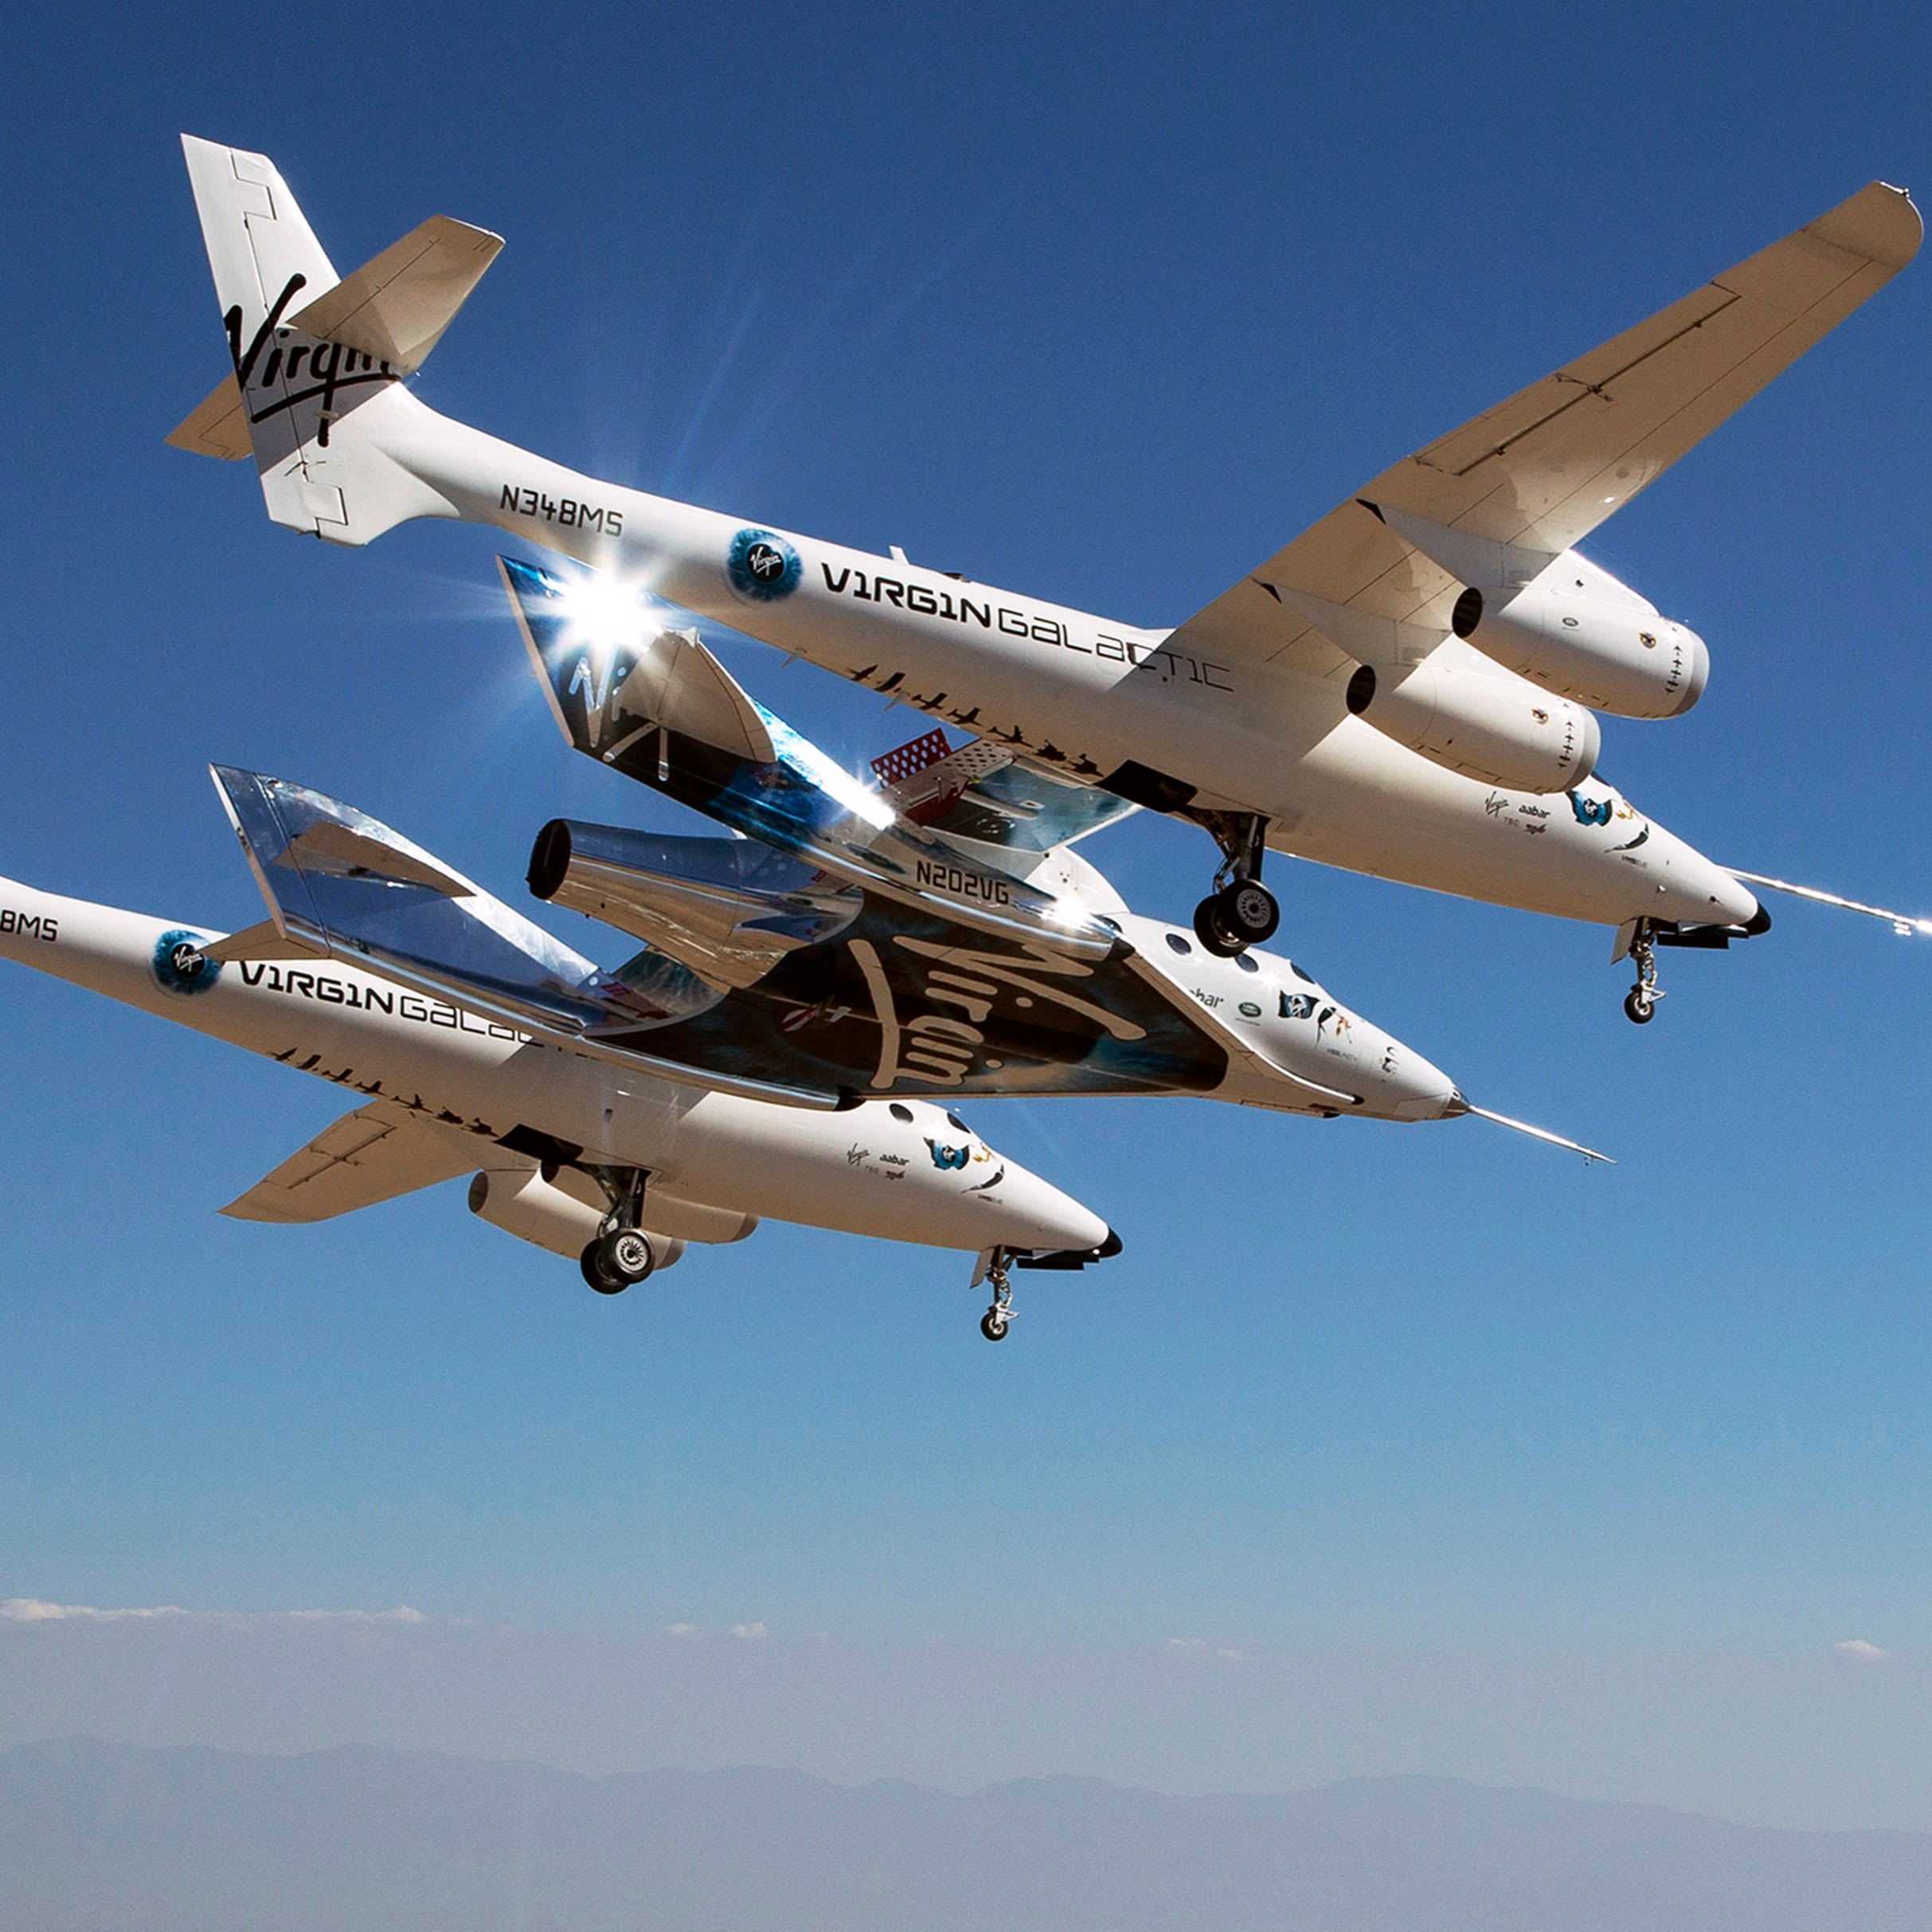 Virgin Galactic's spaceship flying in the sky